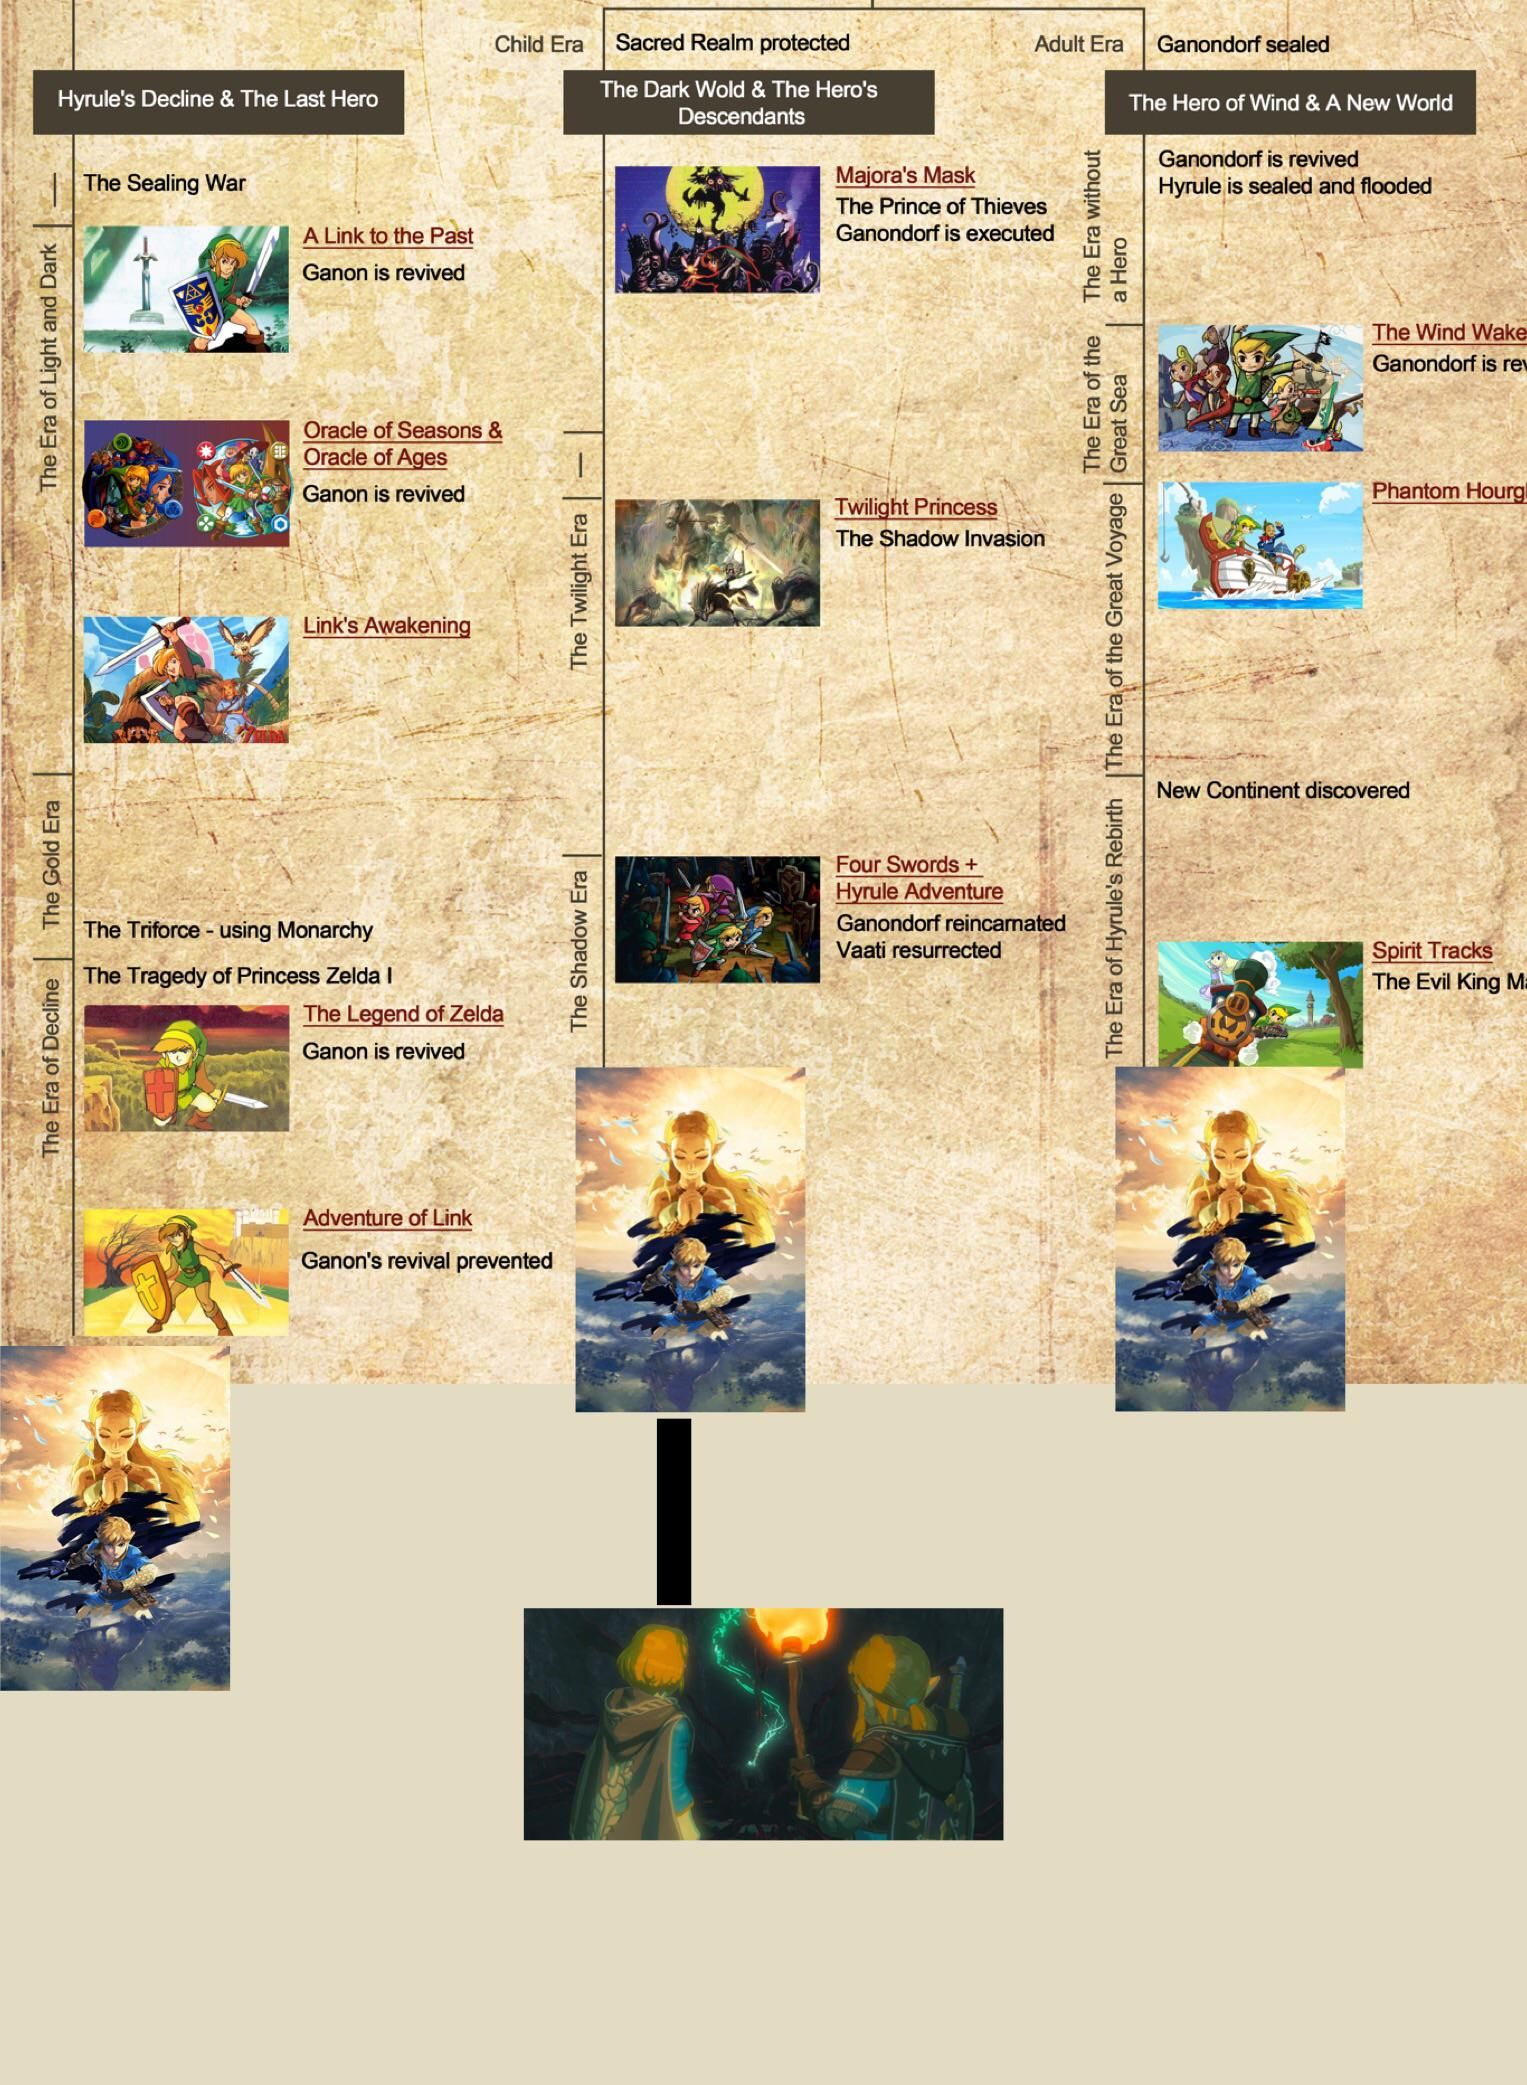 My Prediction On The Timeline Placement Of Botw 2